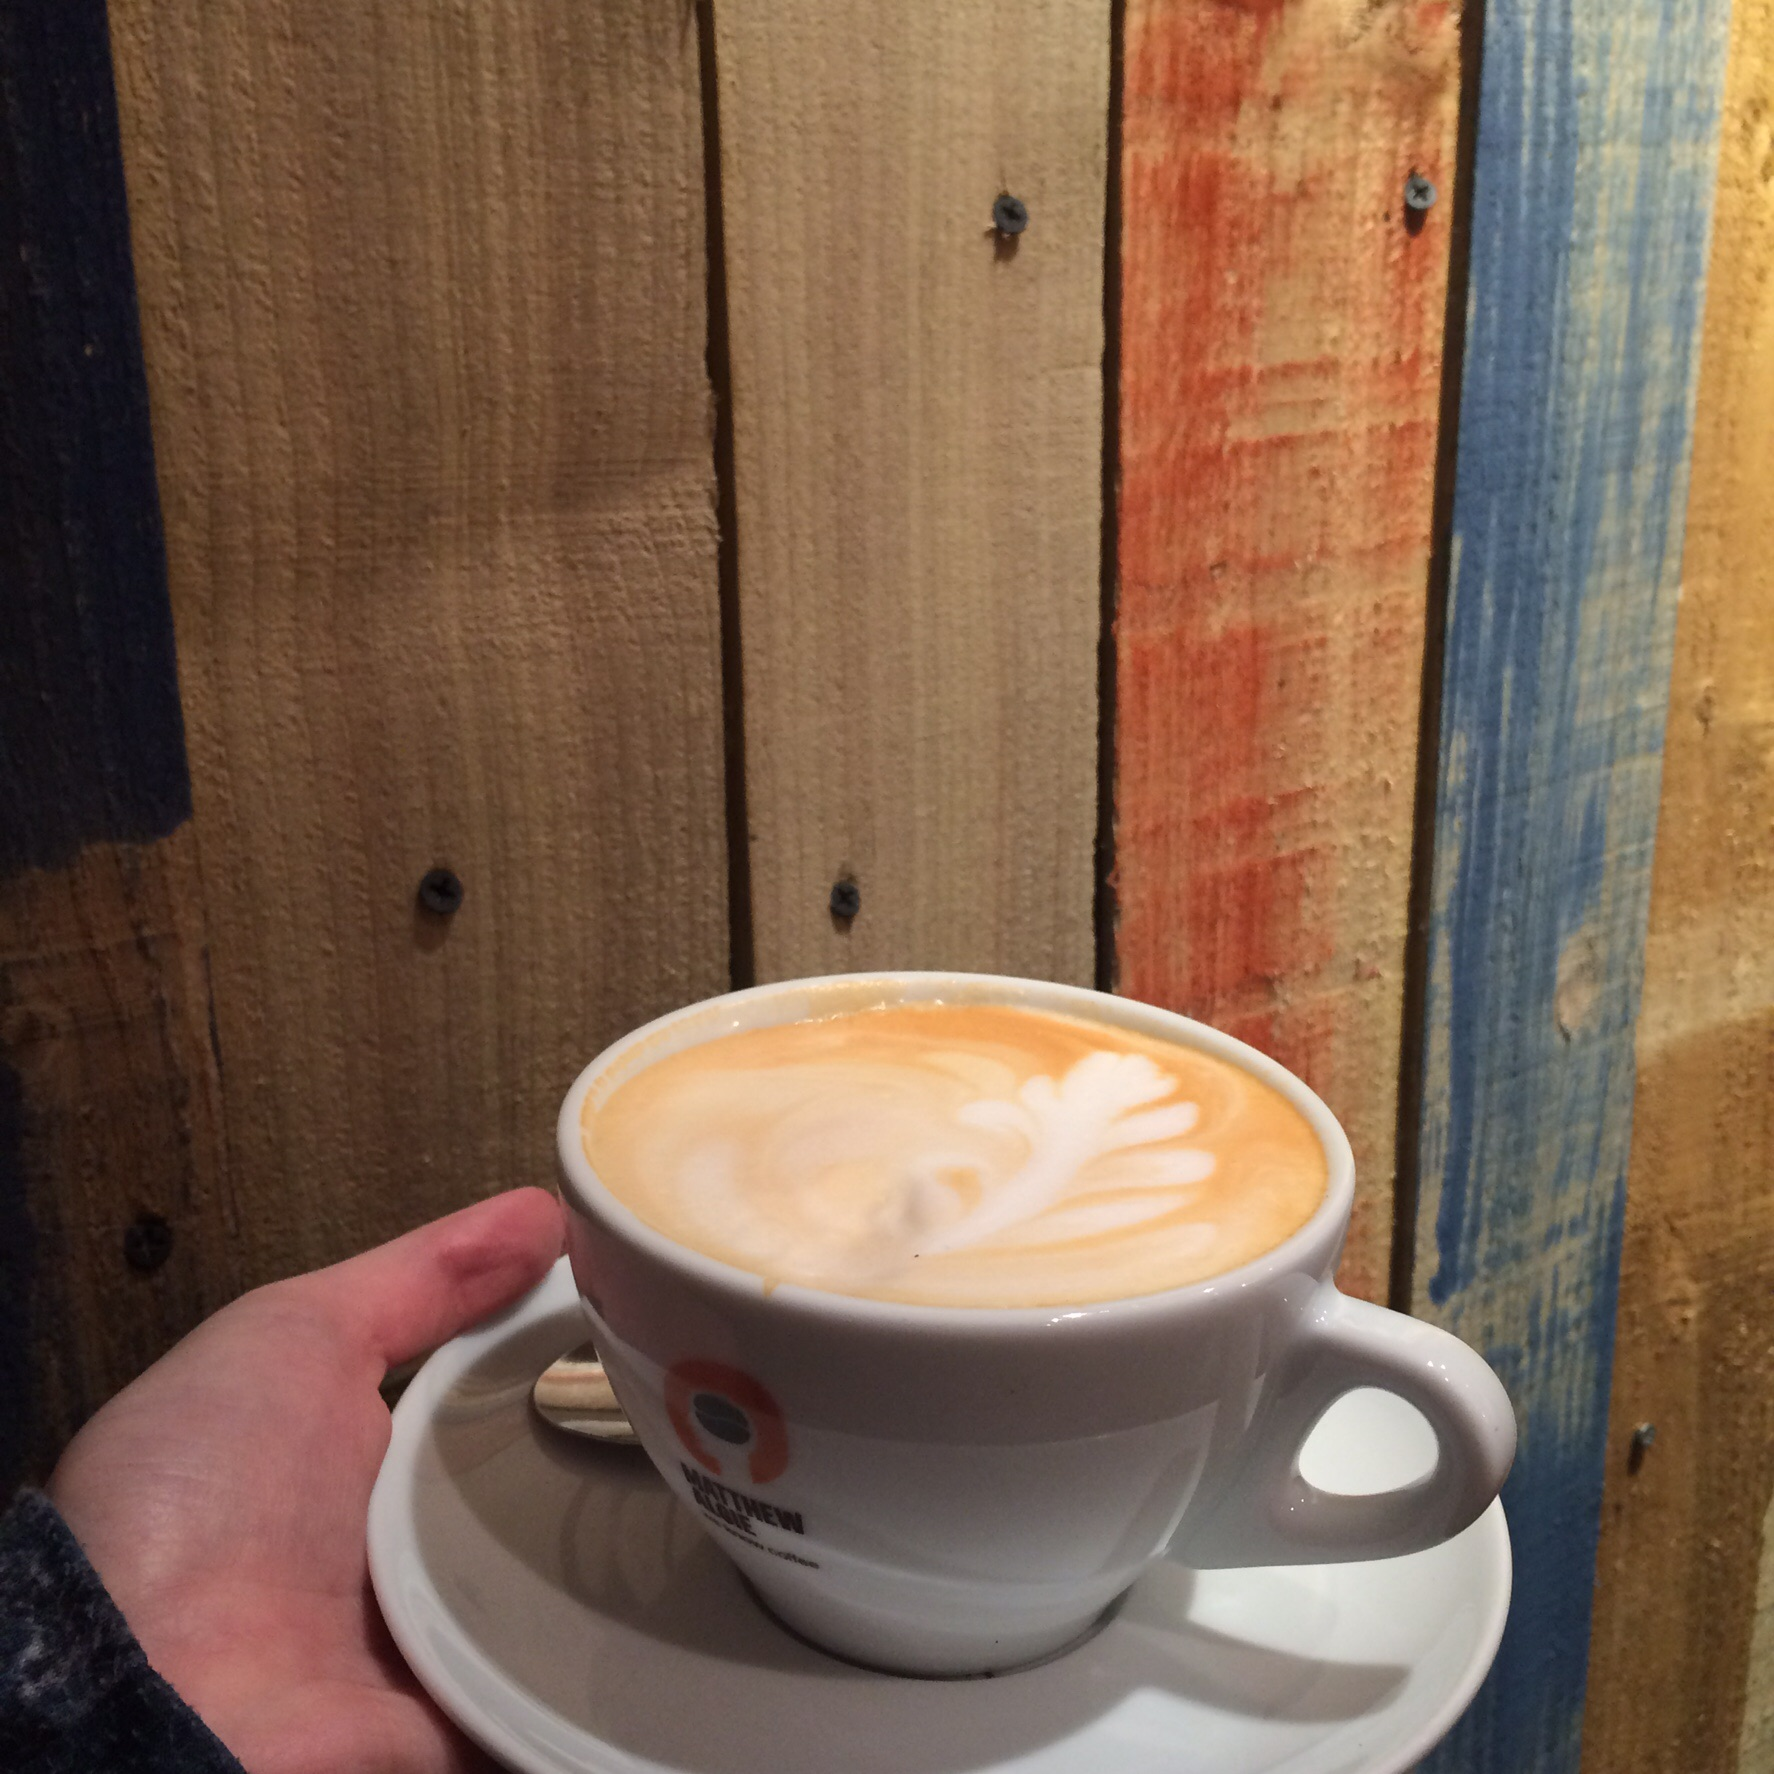 My vanilla rooibos latte against the earthy wall of The Caffeine Drip.